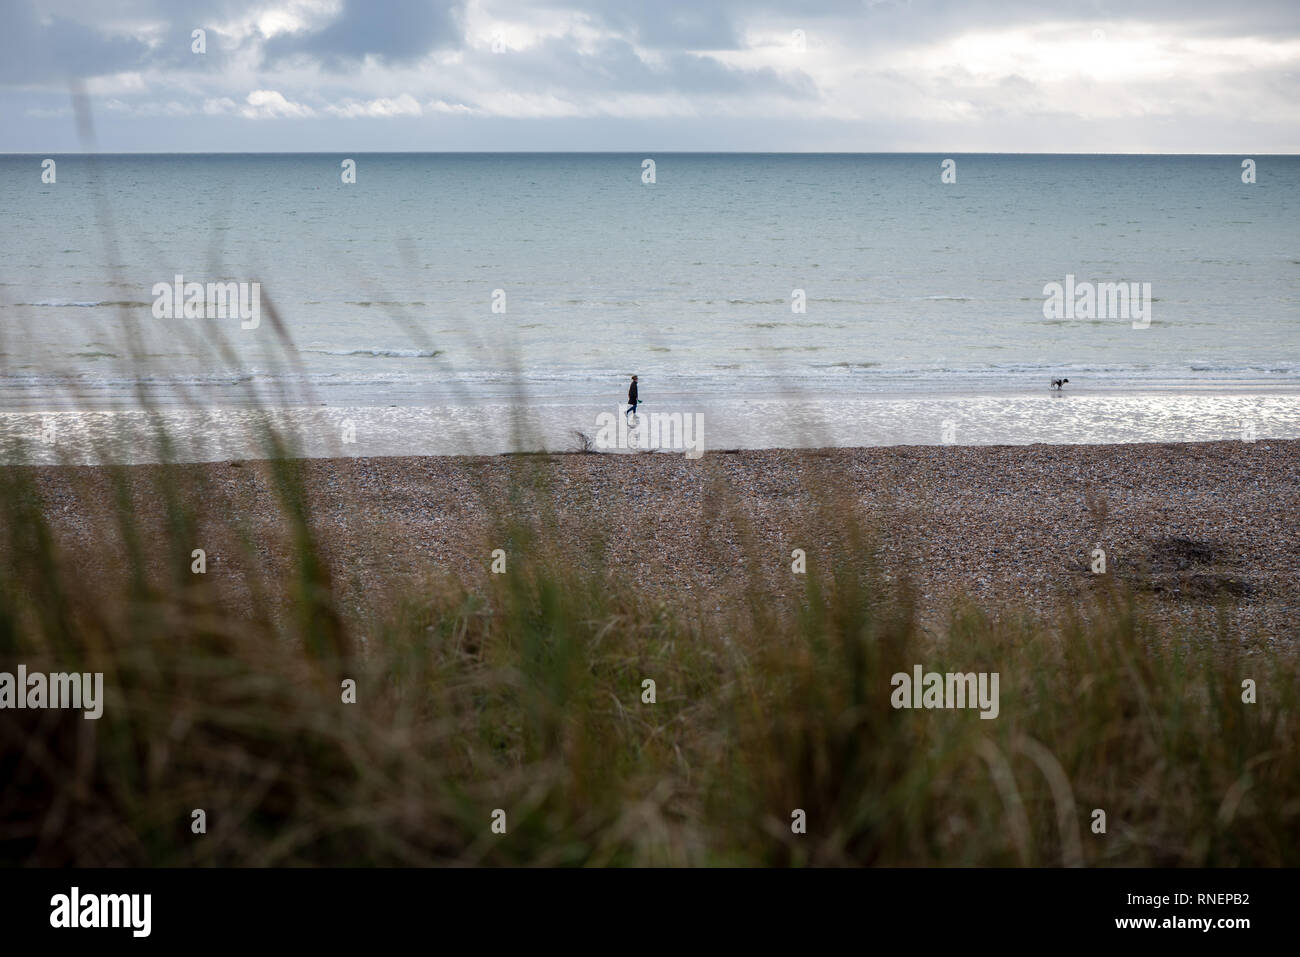 A lone person walks a dog along a deserted beach against a dramatic sky on a winters day. West Beach, Littlehampton, West Sussex, UK. - Stock Image